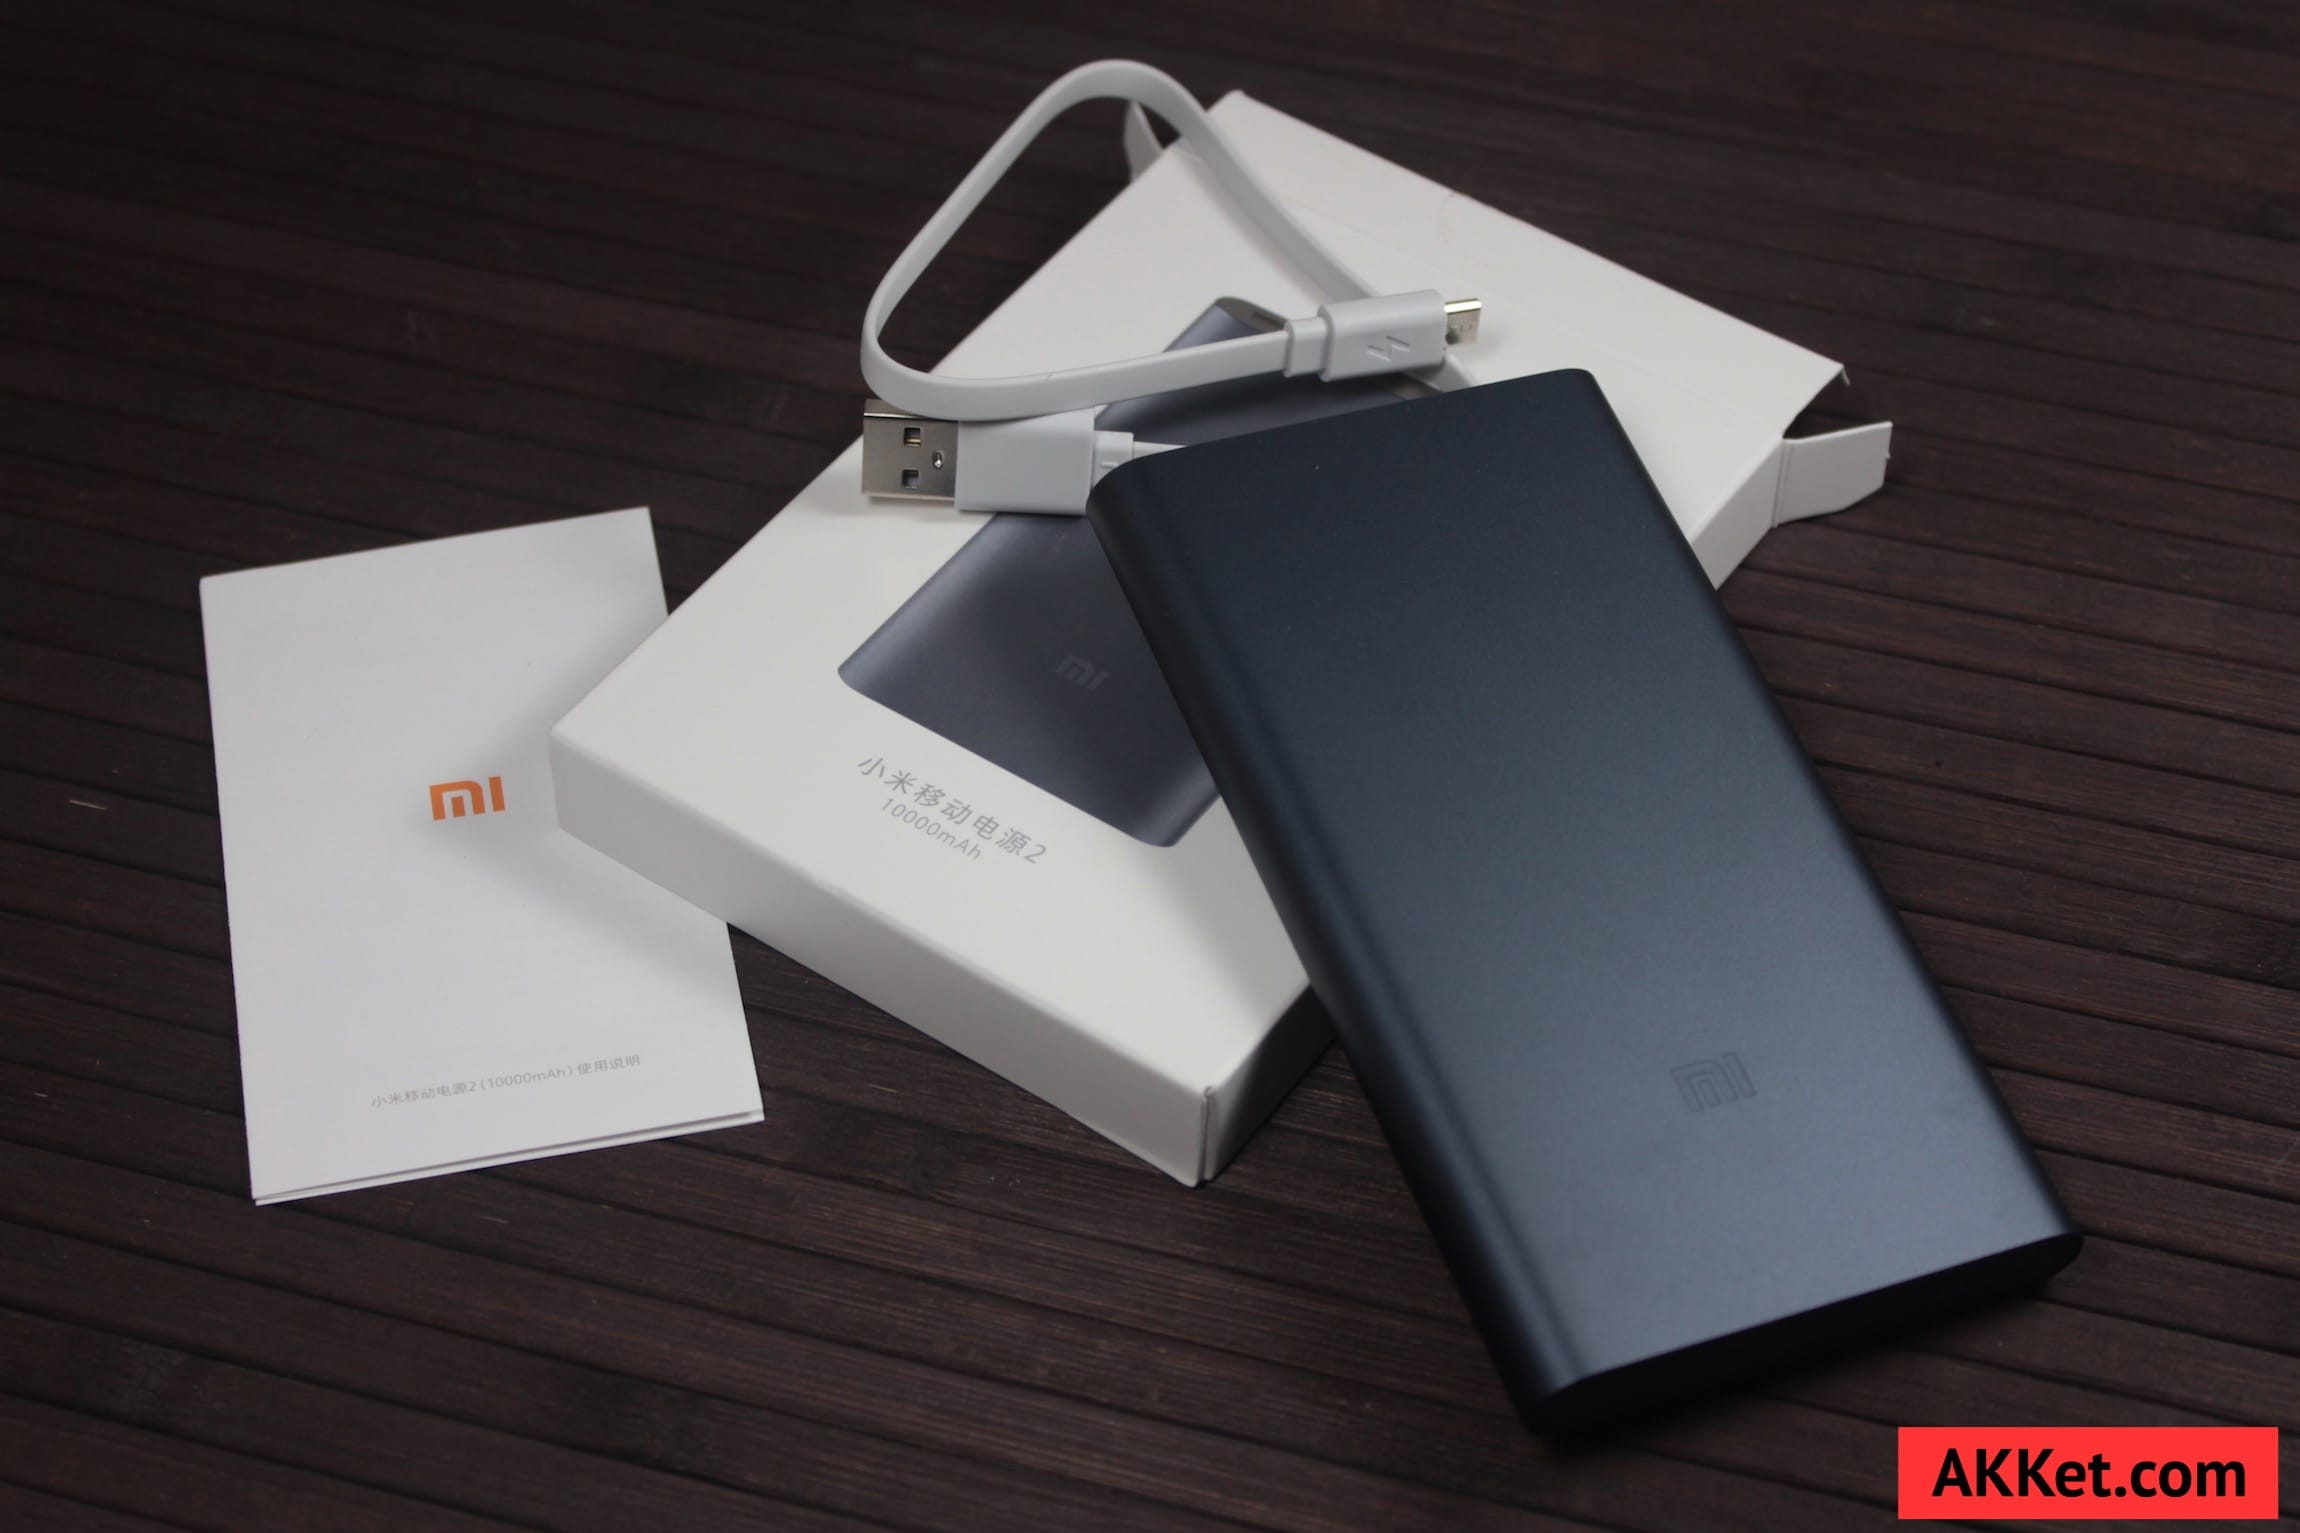 Xiaomi Mi Power Bank 10000 mAh Review iPhone SE AKKet.com 21